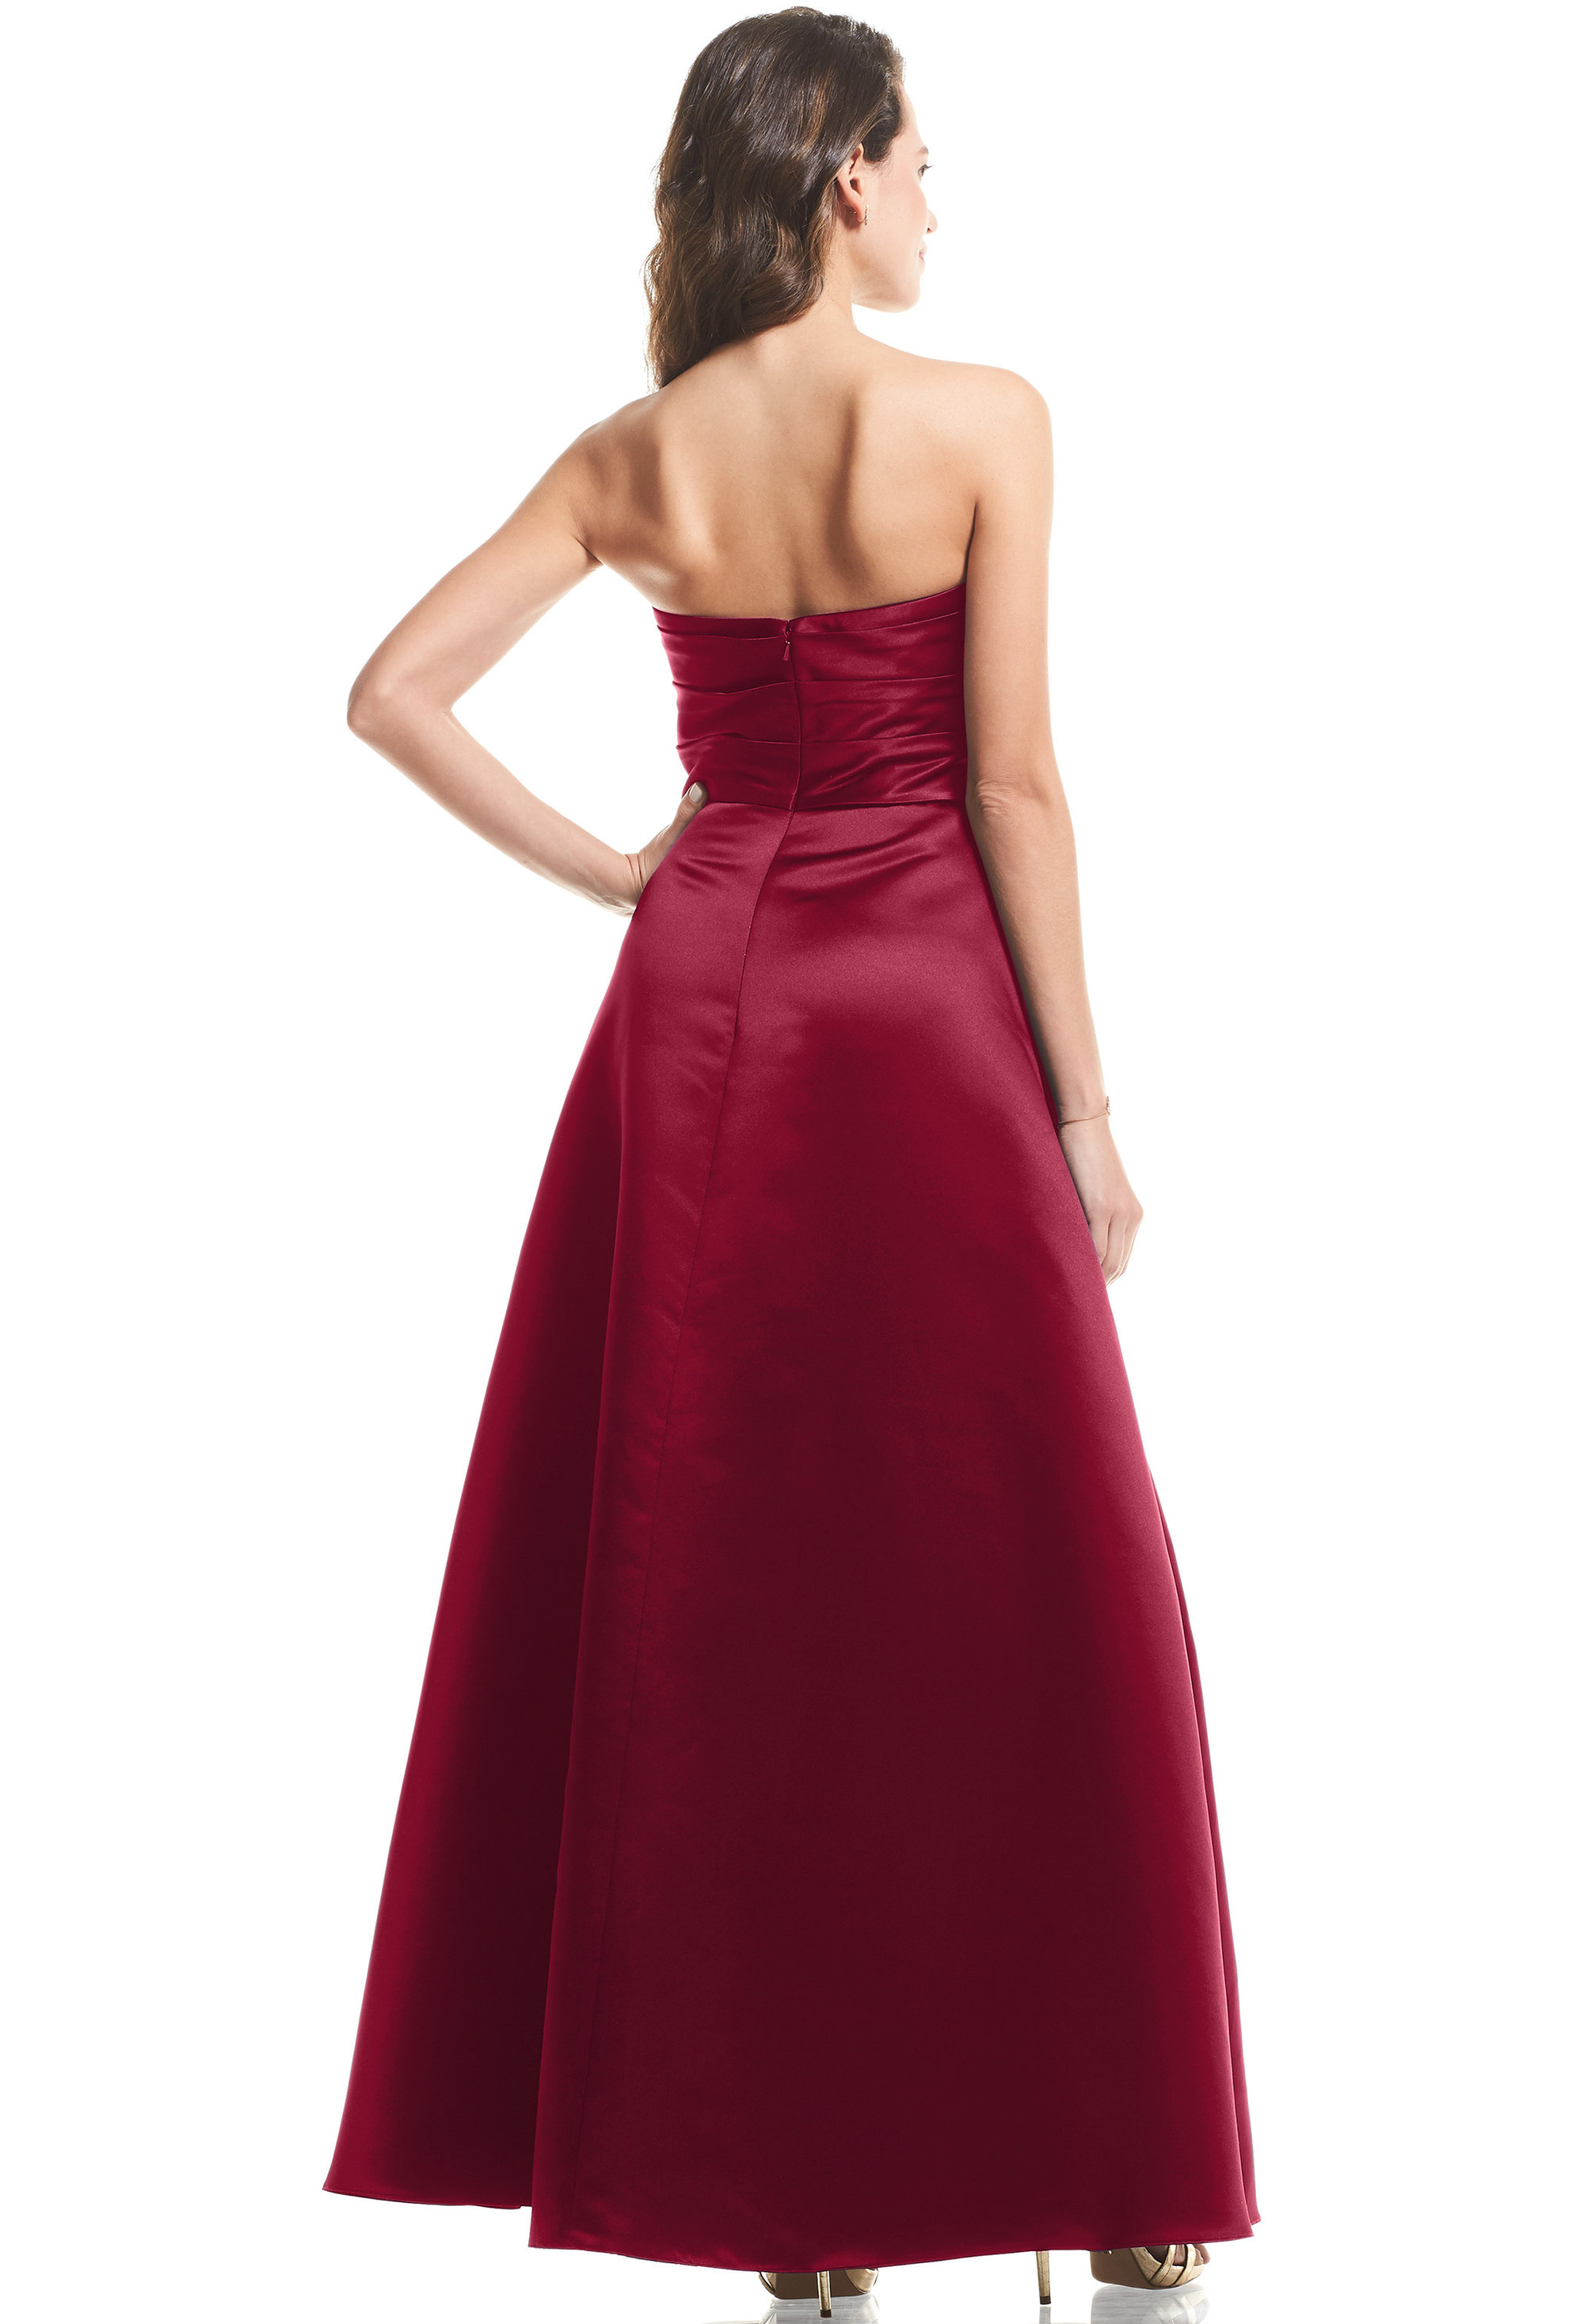 Bill Levkoff EURO RED European Satin Strapless A-Line gown, $99.00 Back